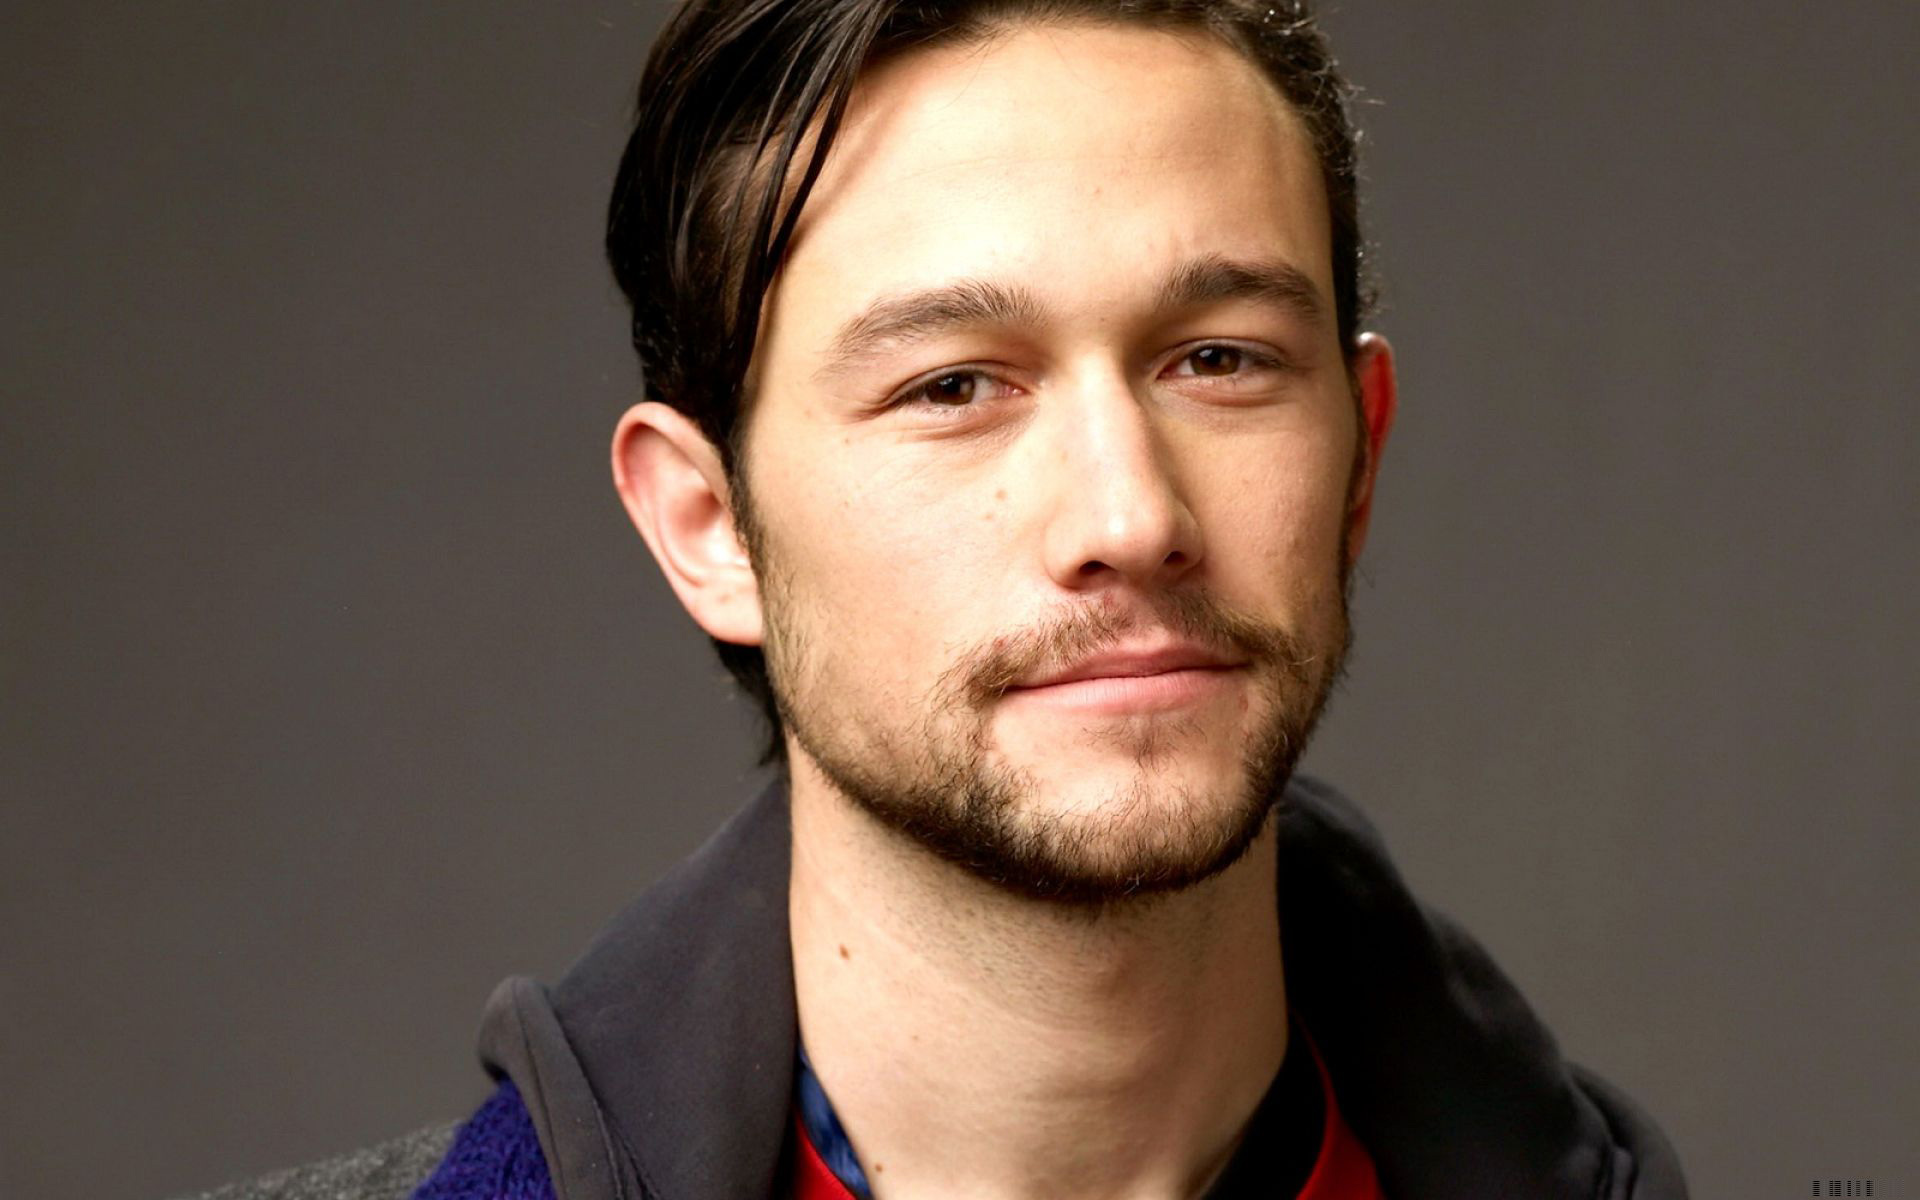 joseph gordon-levitt Beard | height and weights джозеф гордон левитт